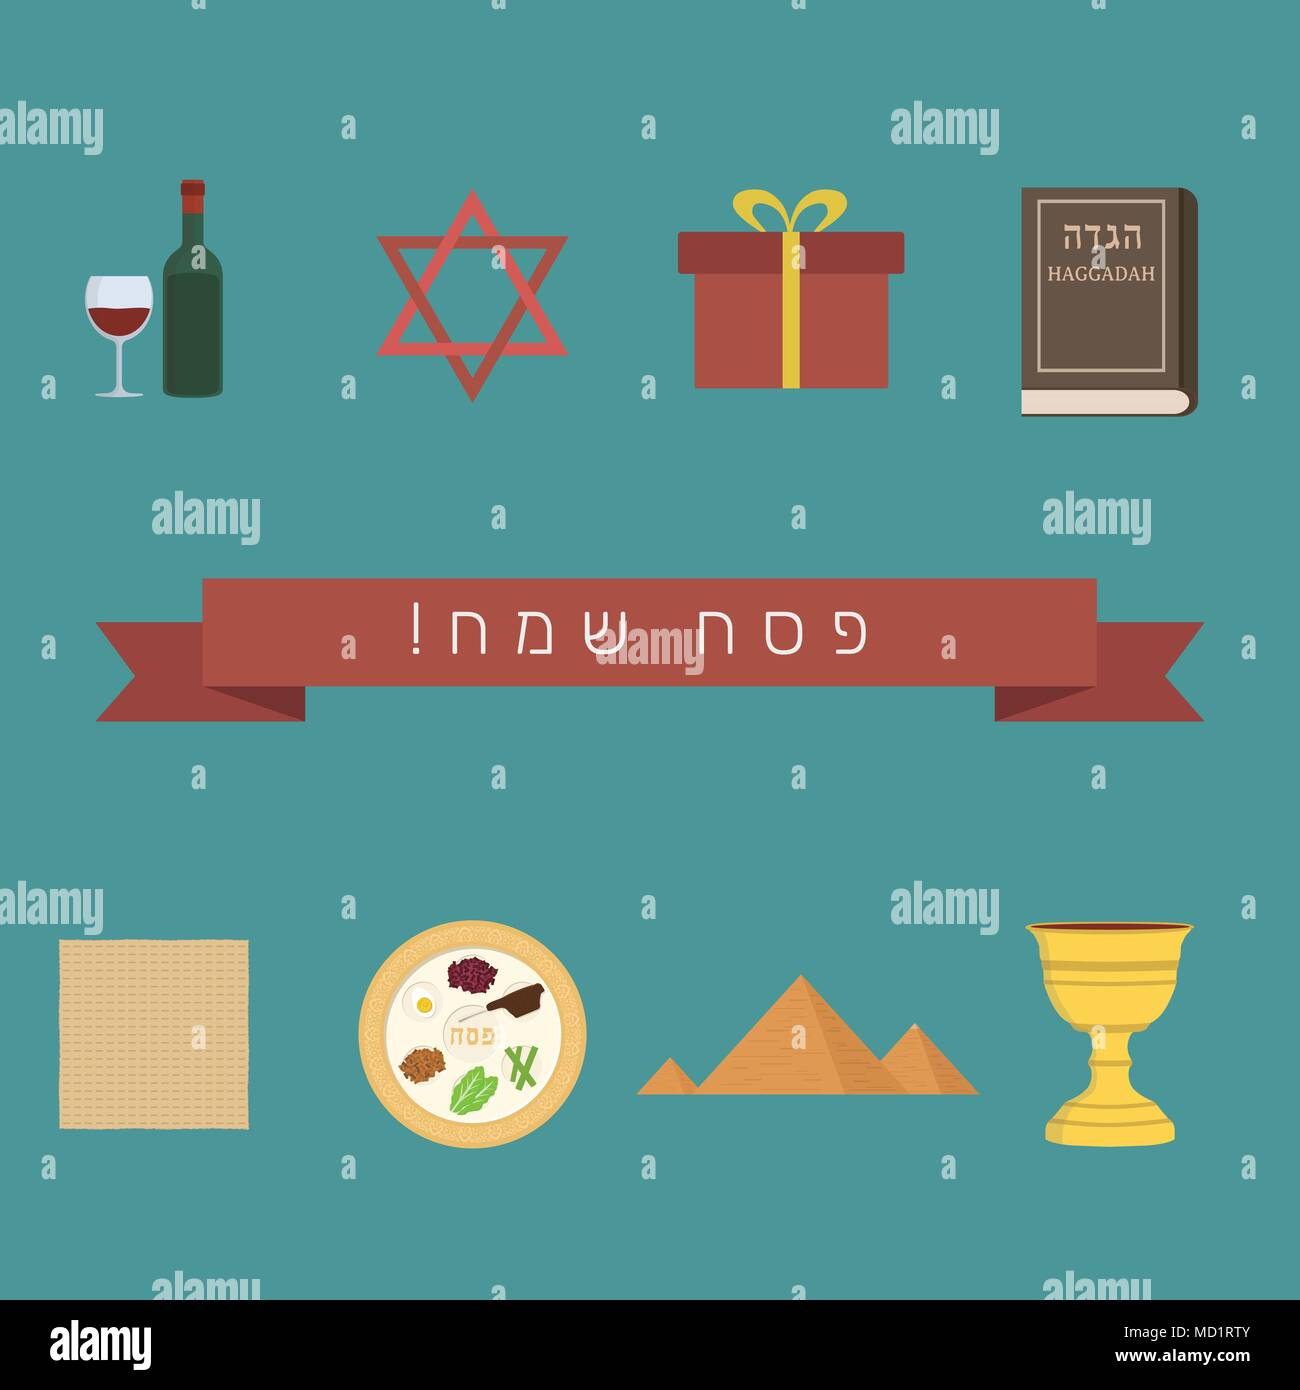 Passover holiday flat design icons set with text in hebrew 'Pesach Sameach' meaning 'Happy Passover'. - Stock Vector